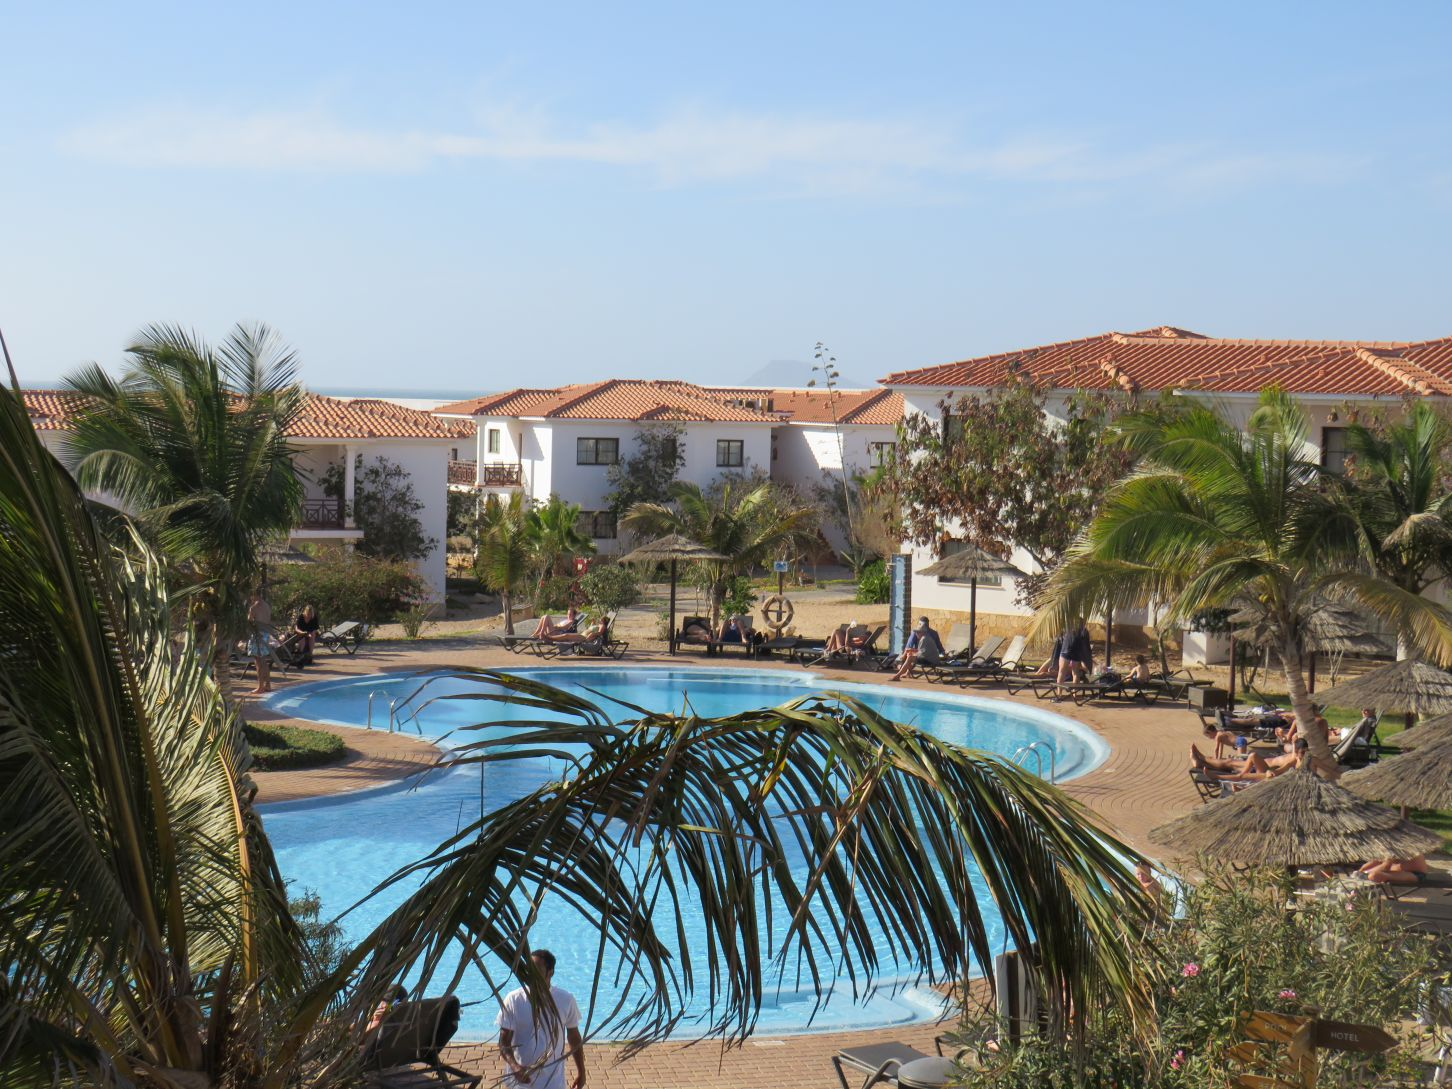 Terrace View Tortuga BEach Resort Property for Sale Cape Verde